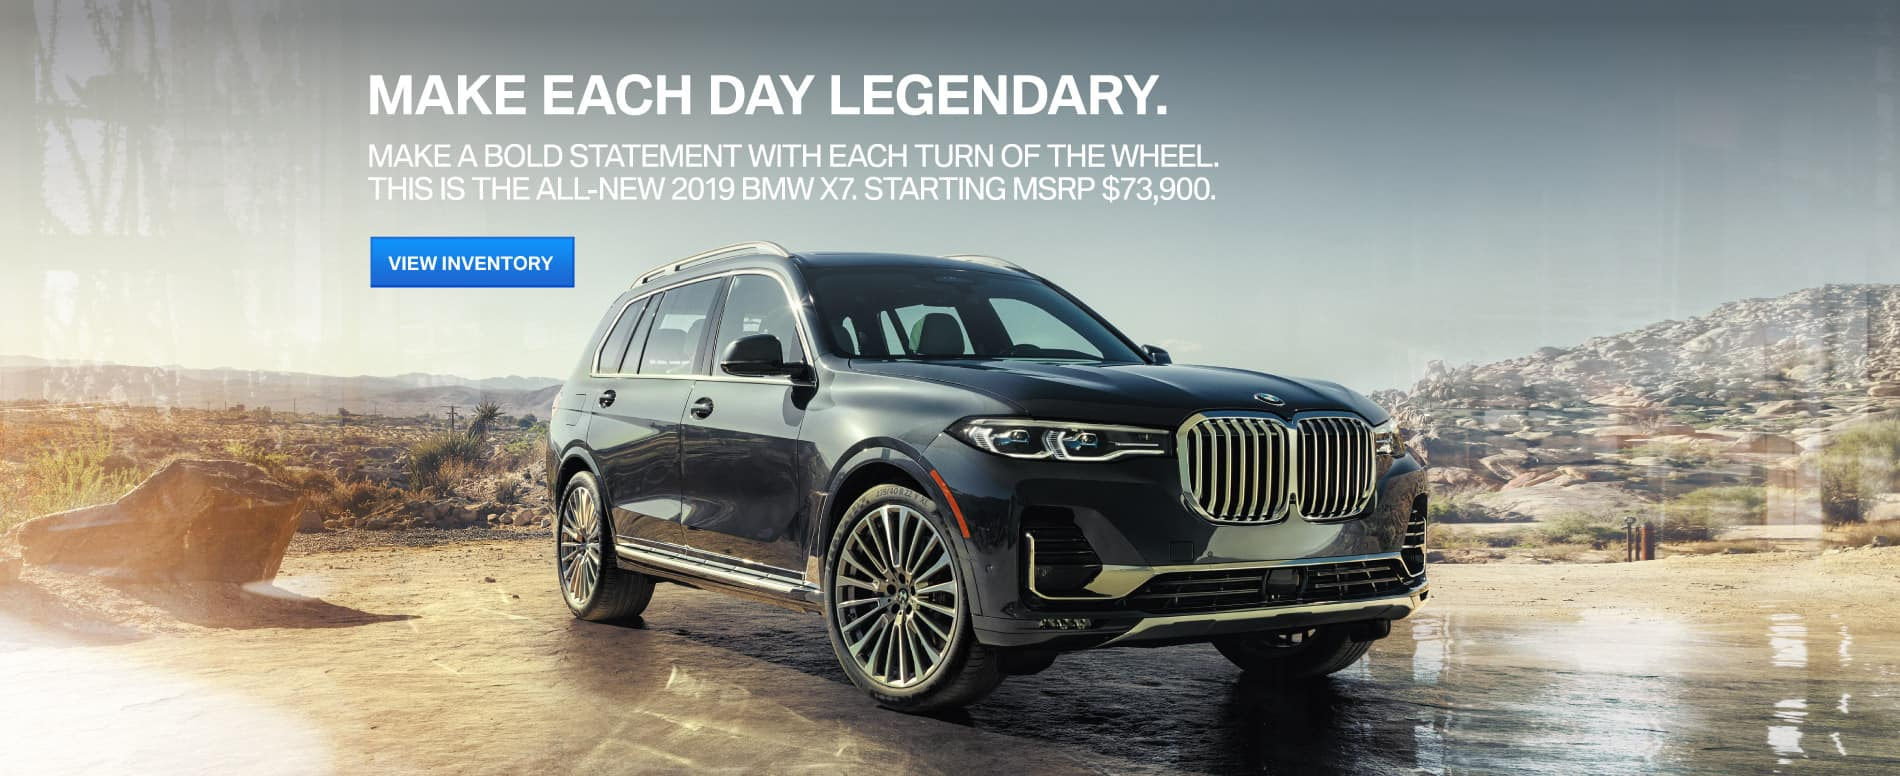 Autobahn BMW | The All New X7 Series Has Arrived!